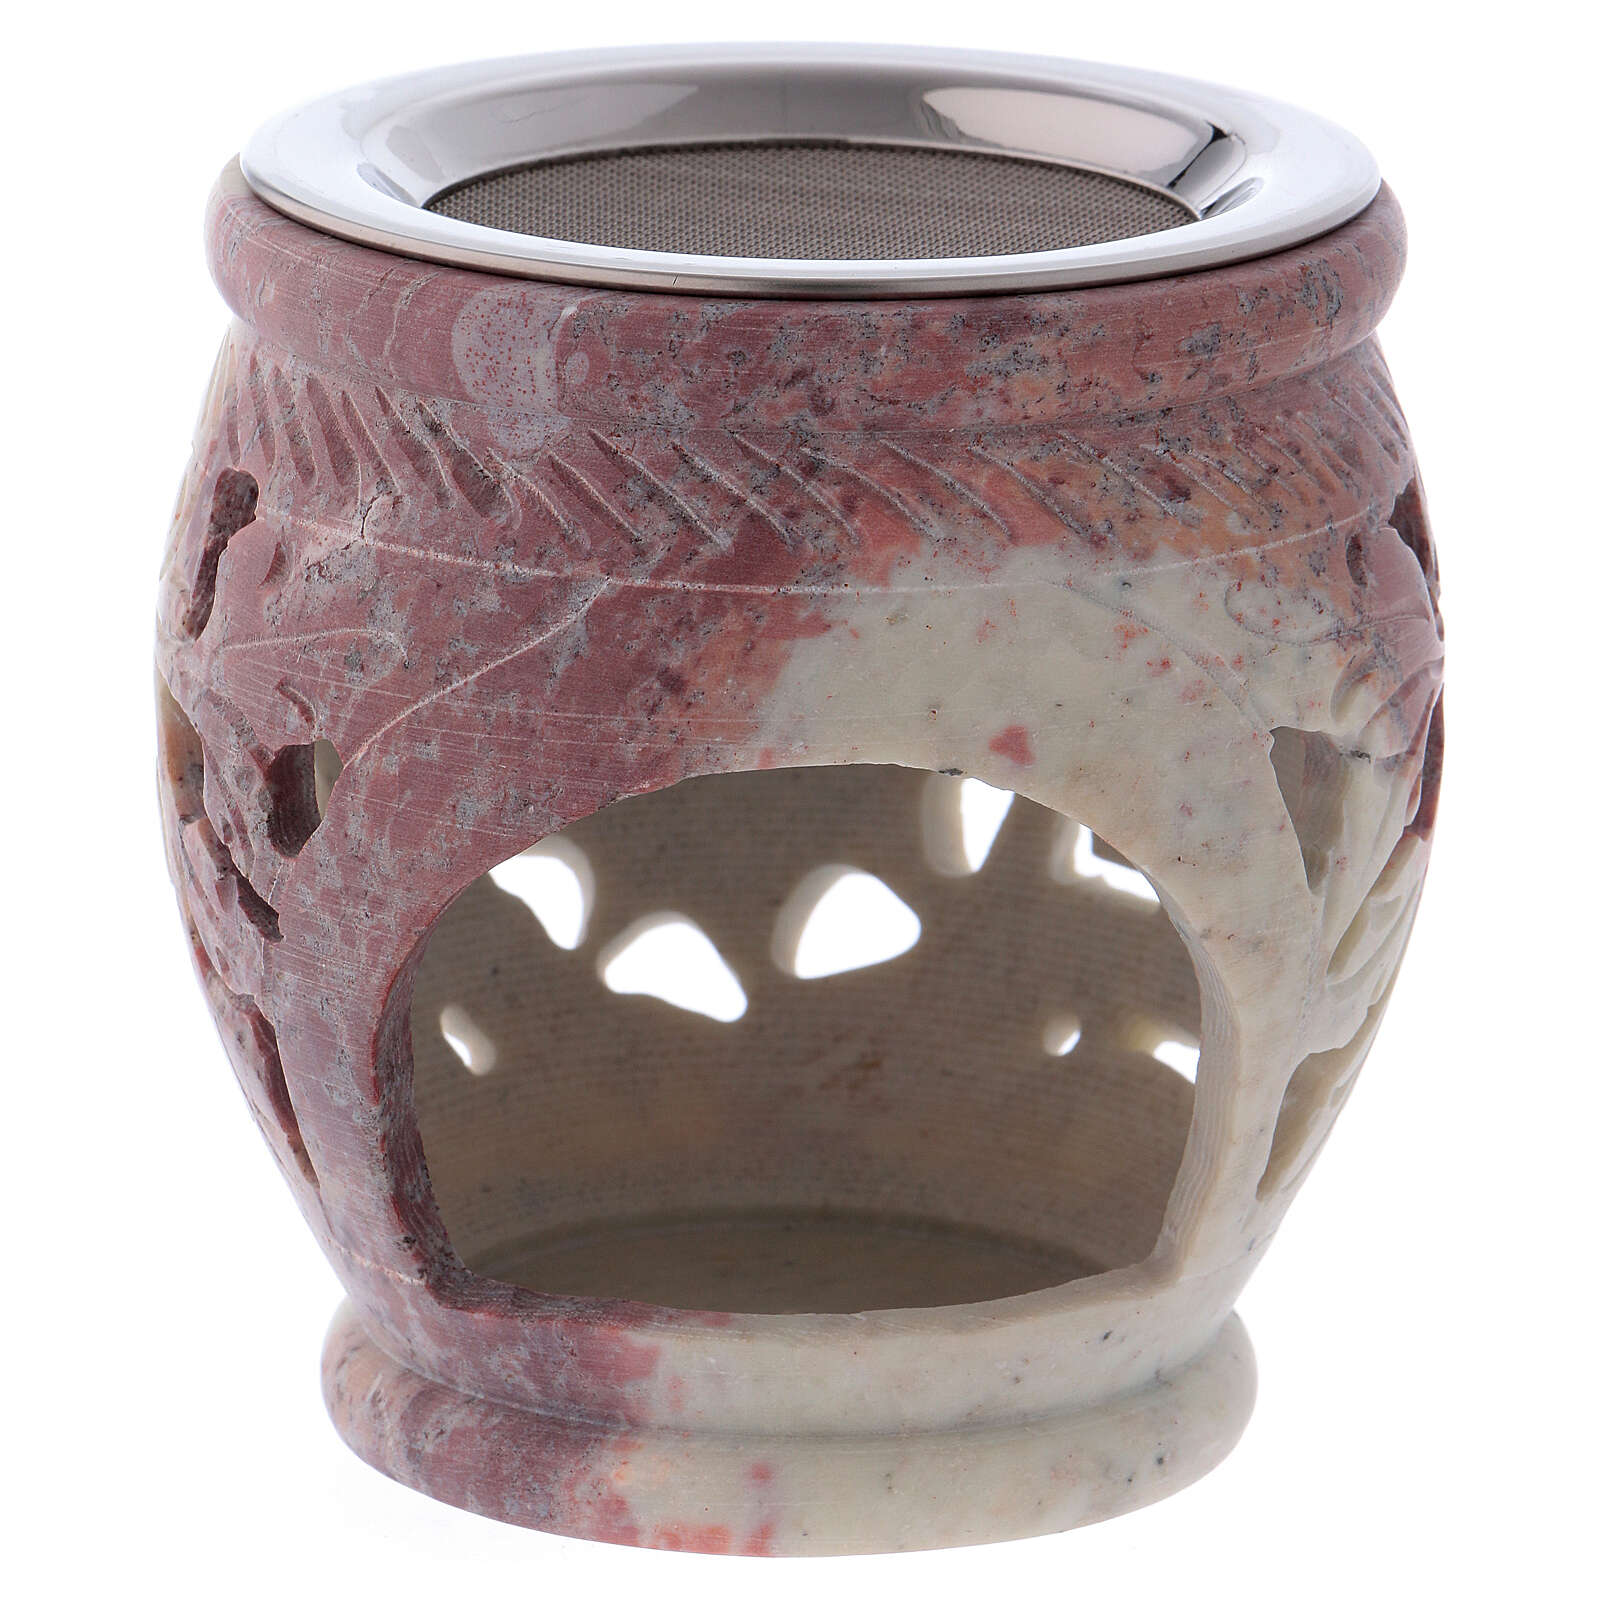 Decorated incense burner in white soapstone with purple shades 3